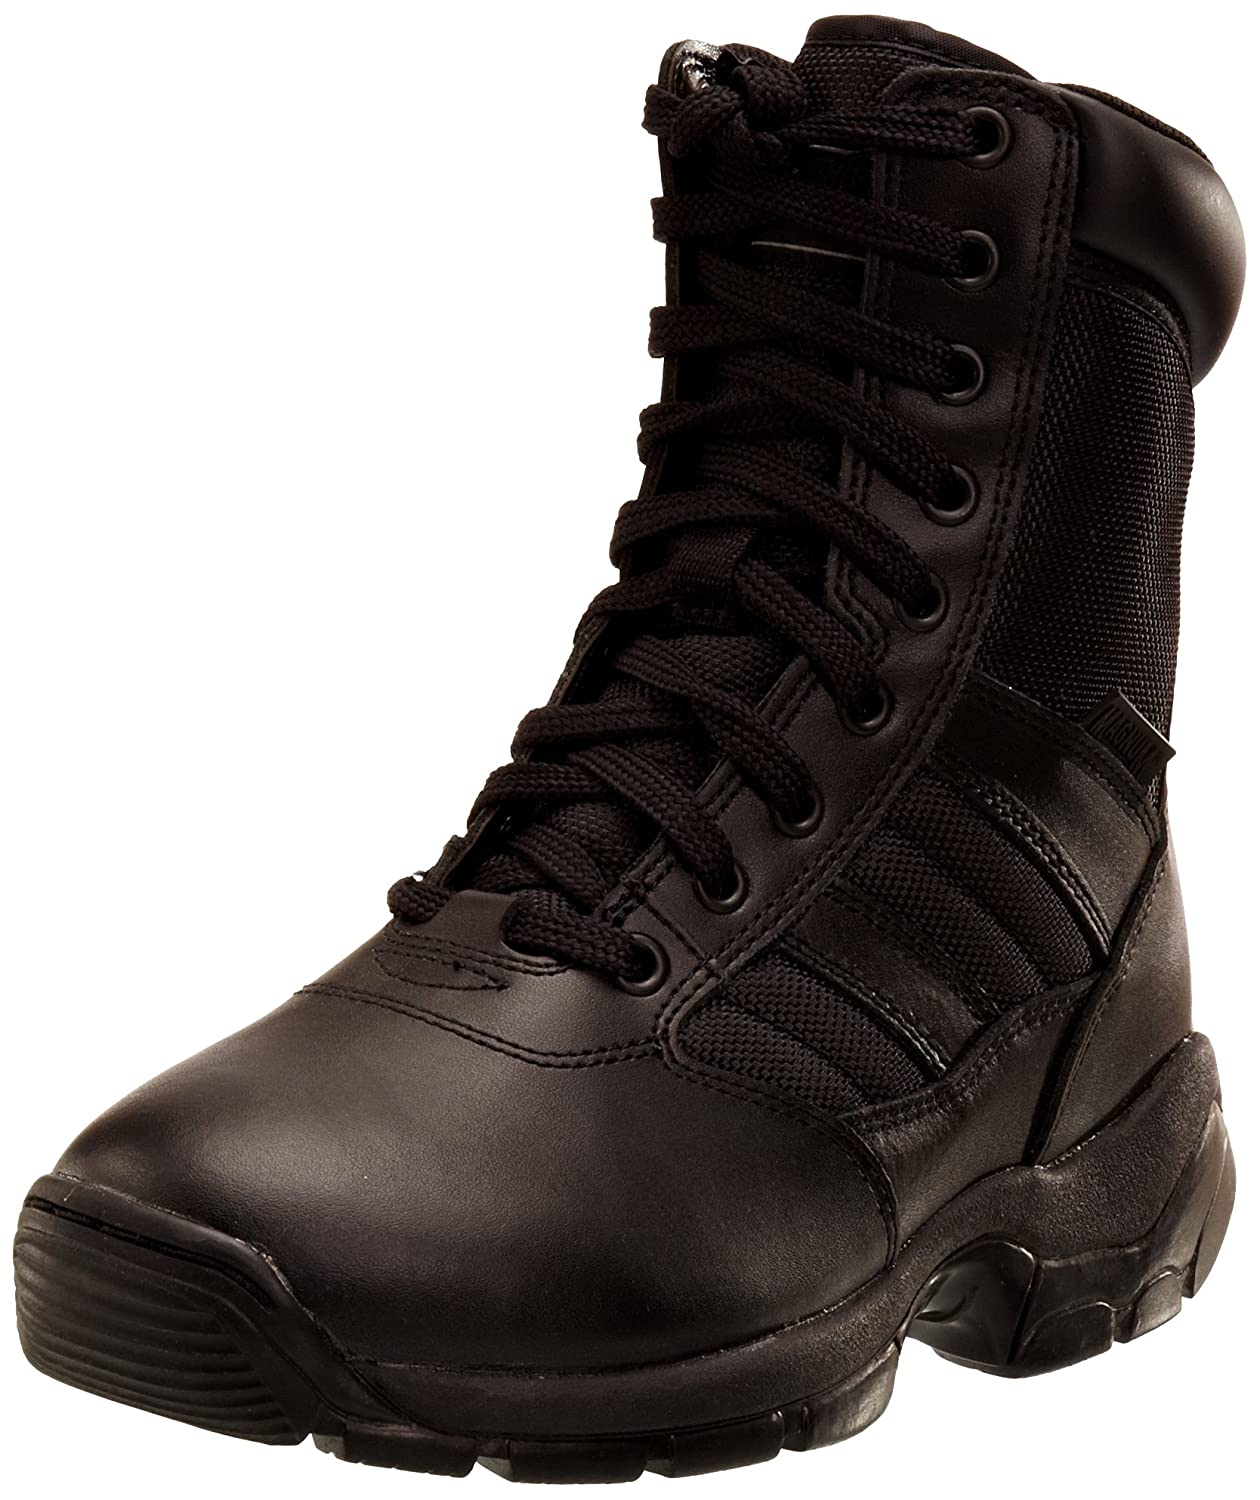 Magnum Panther 8.0 Boots - AW17 B003BFX6A2 10 M US|Black